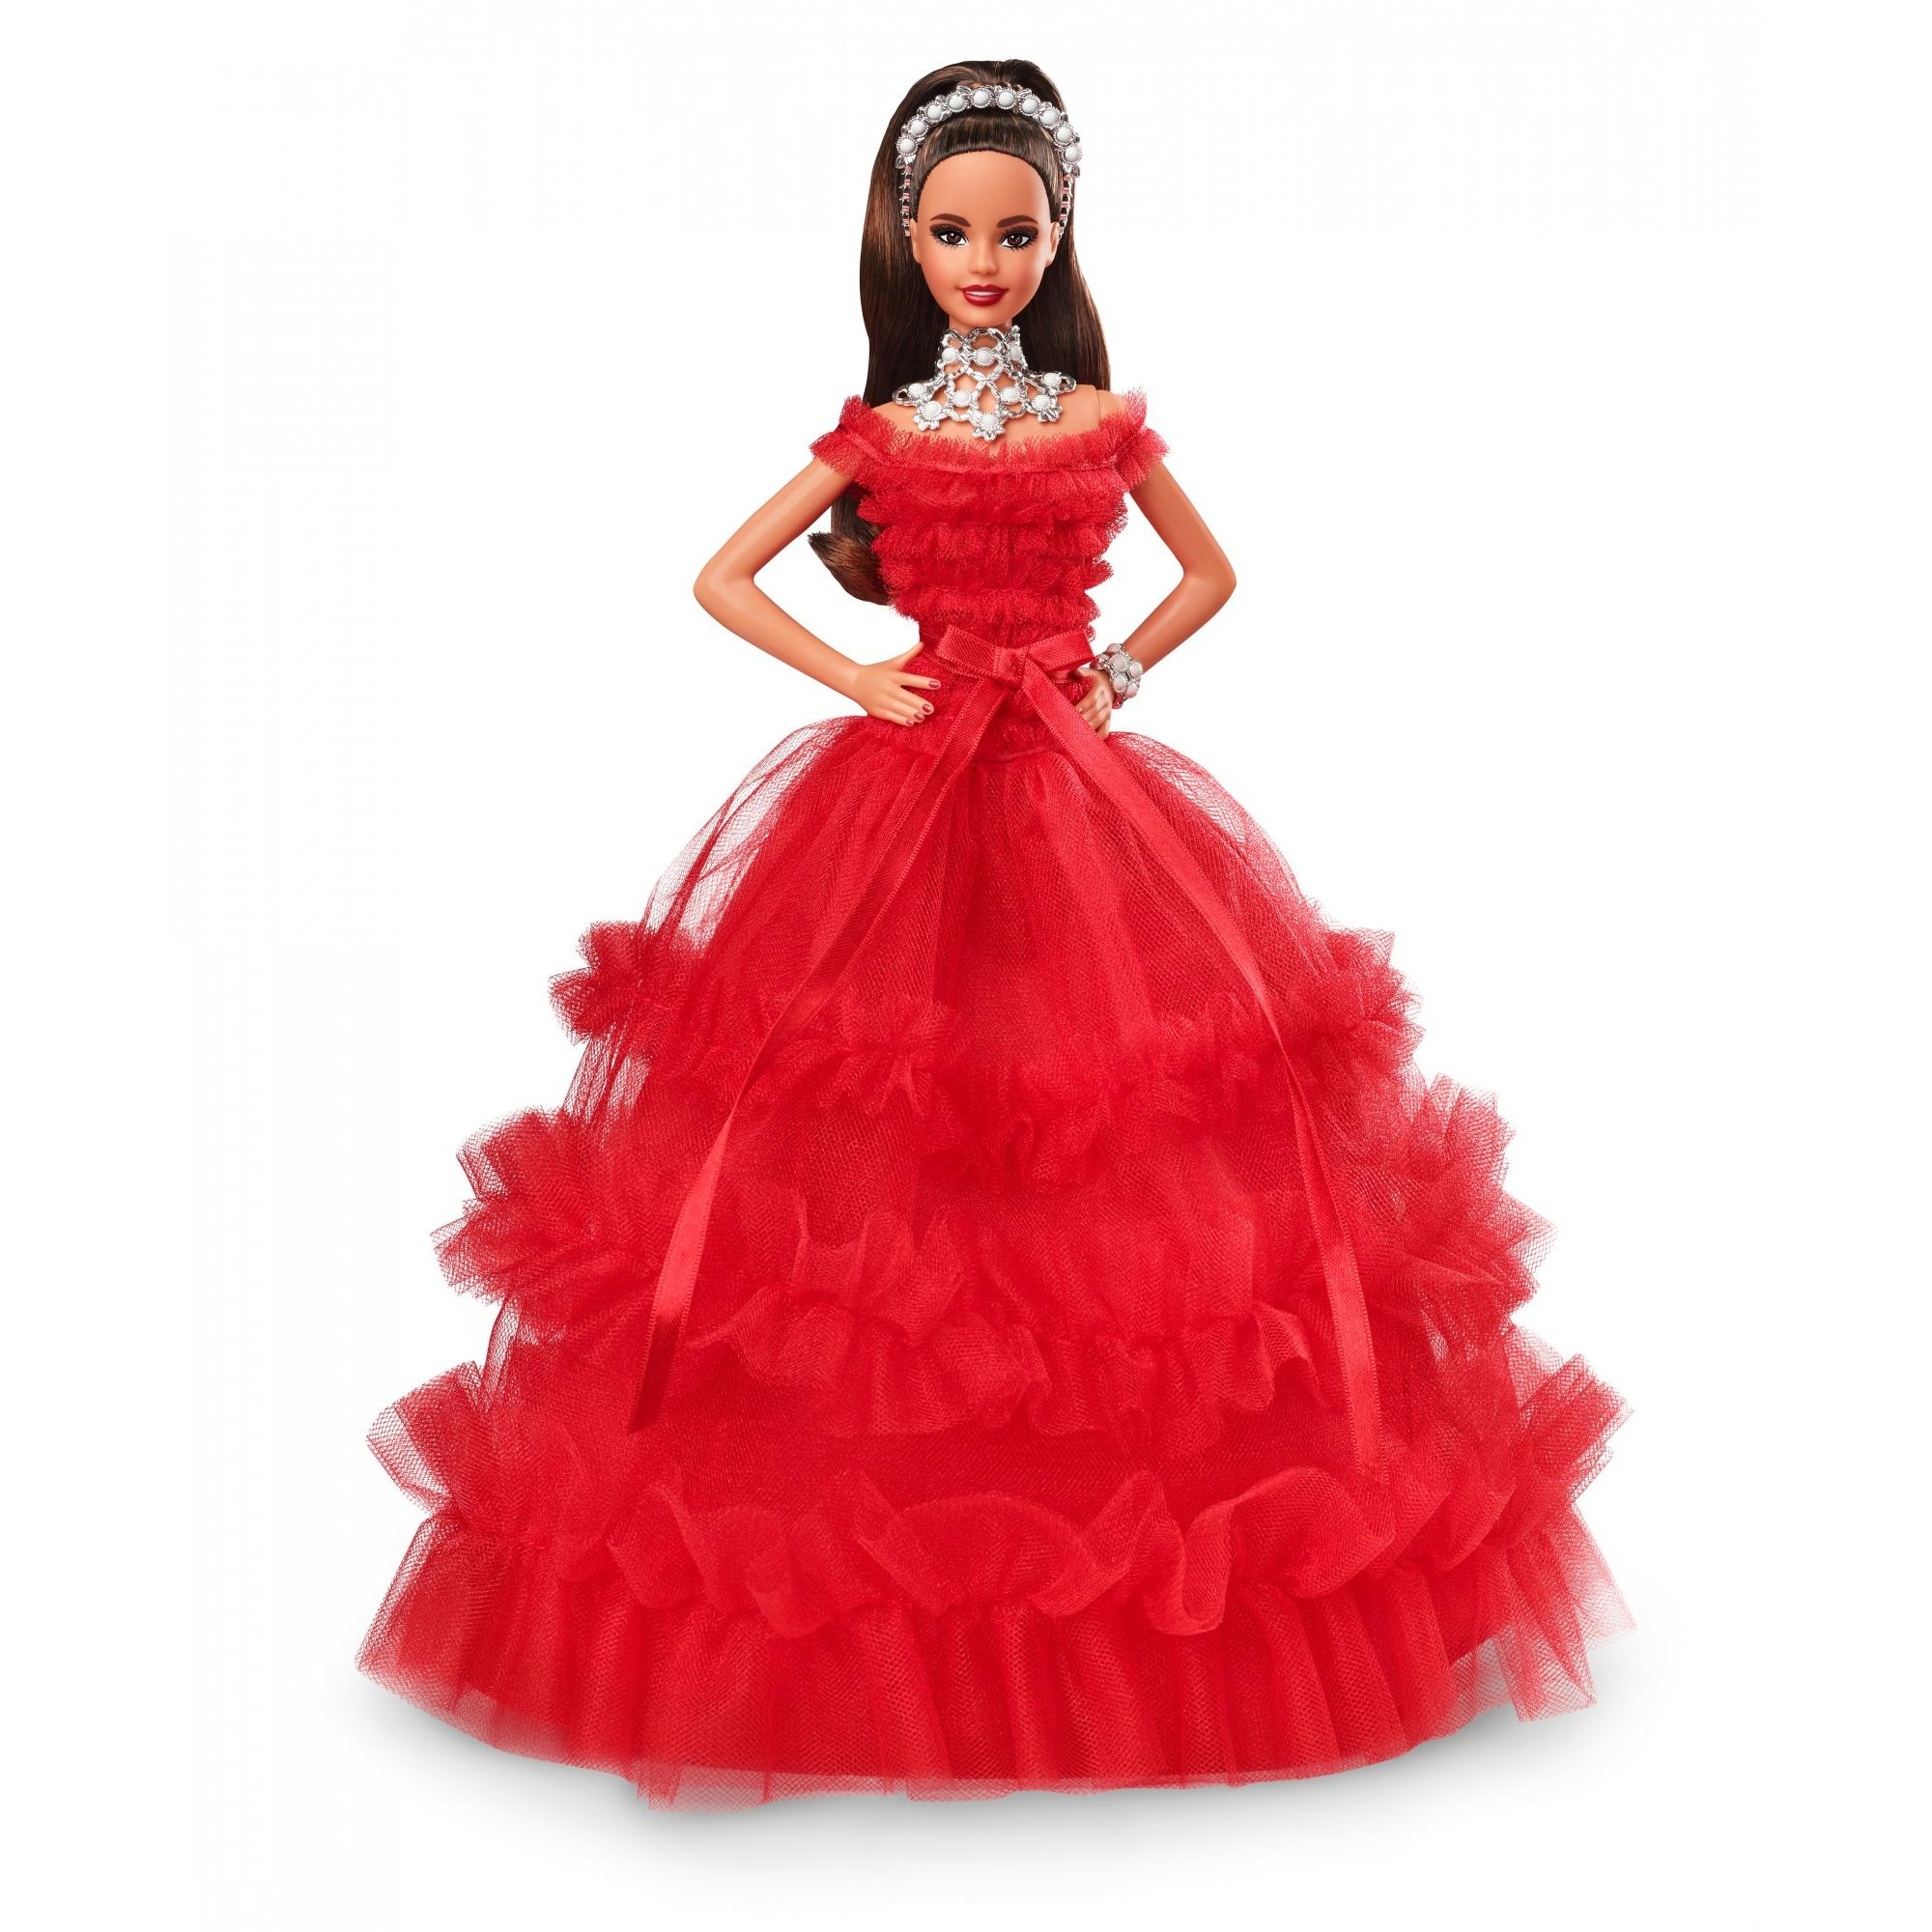 2018 Holiday Collector Barbie Signature Teresa Doll with Stand